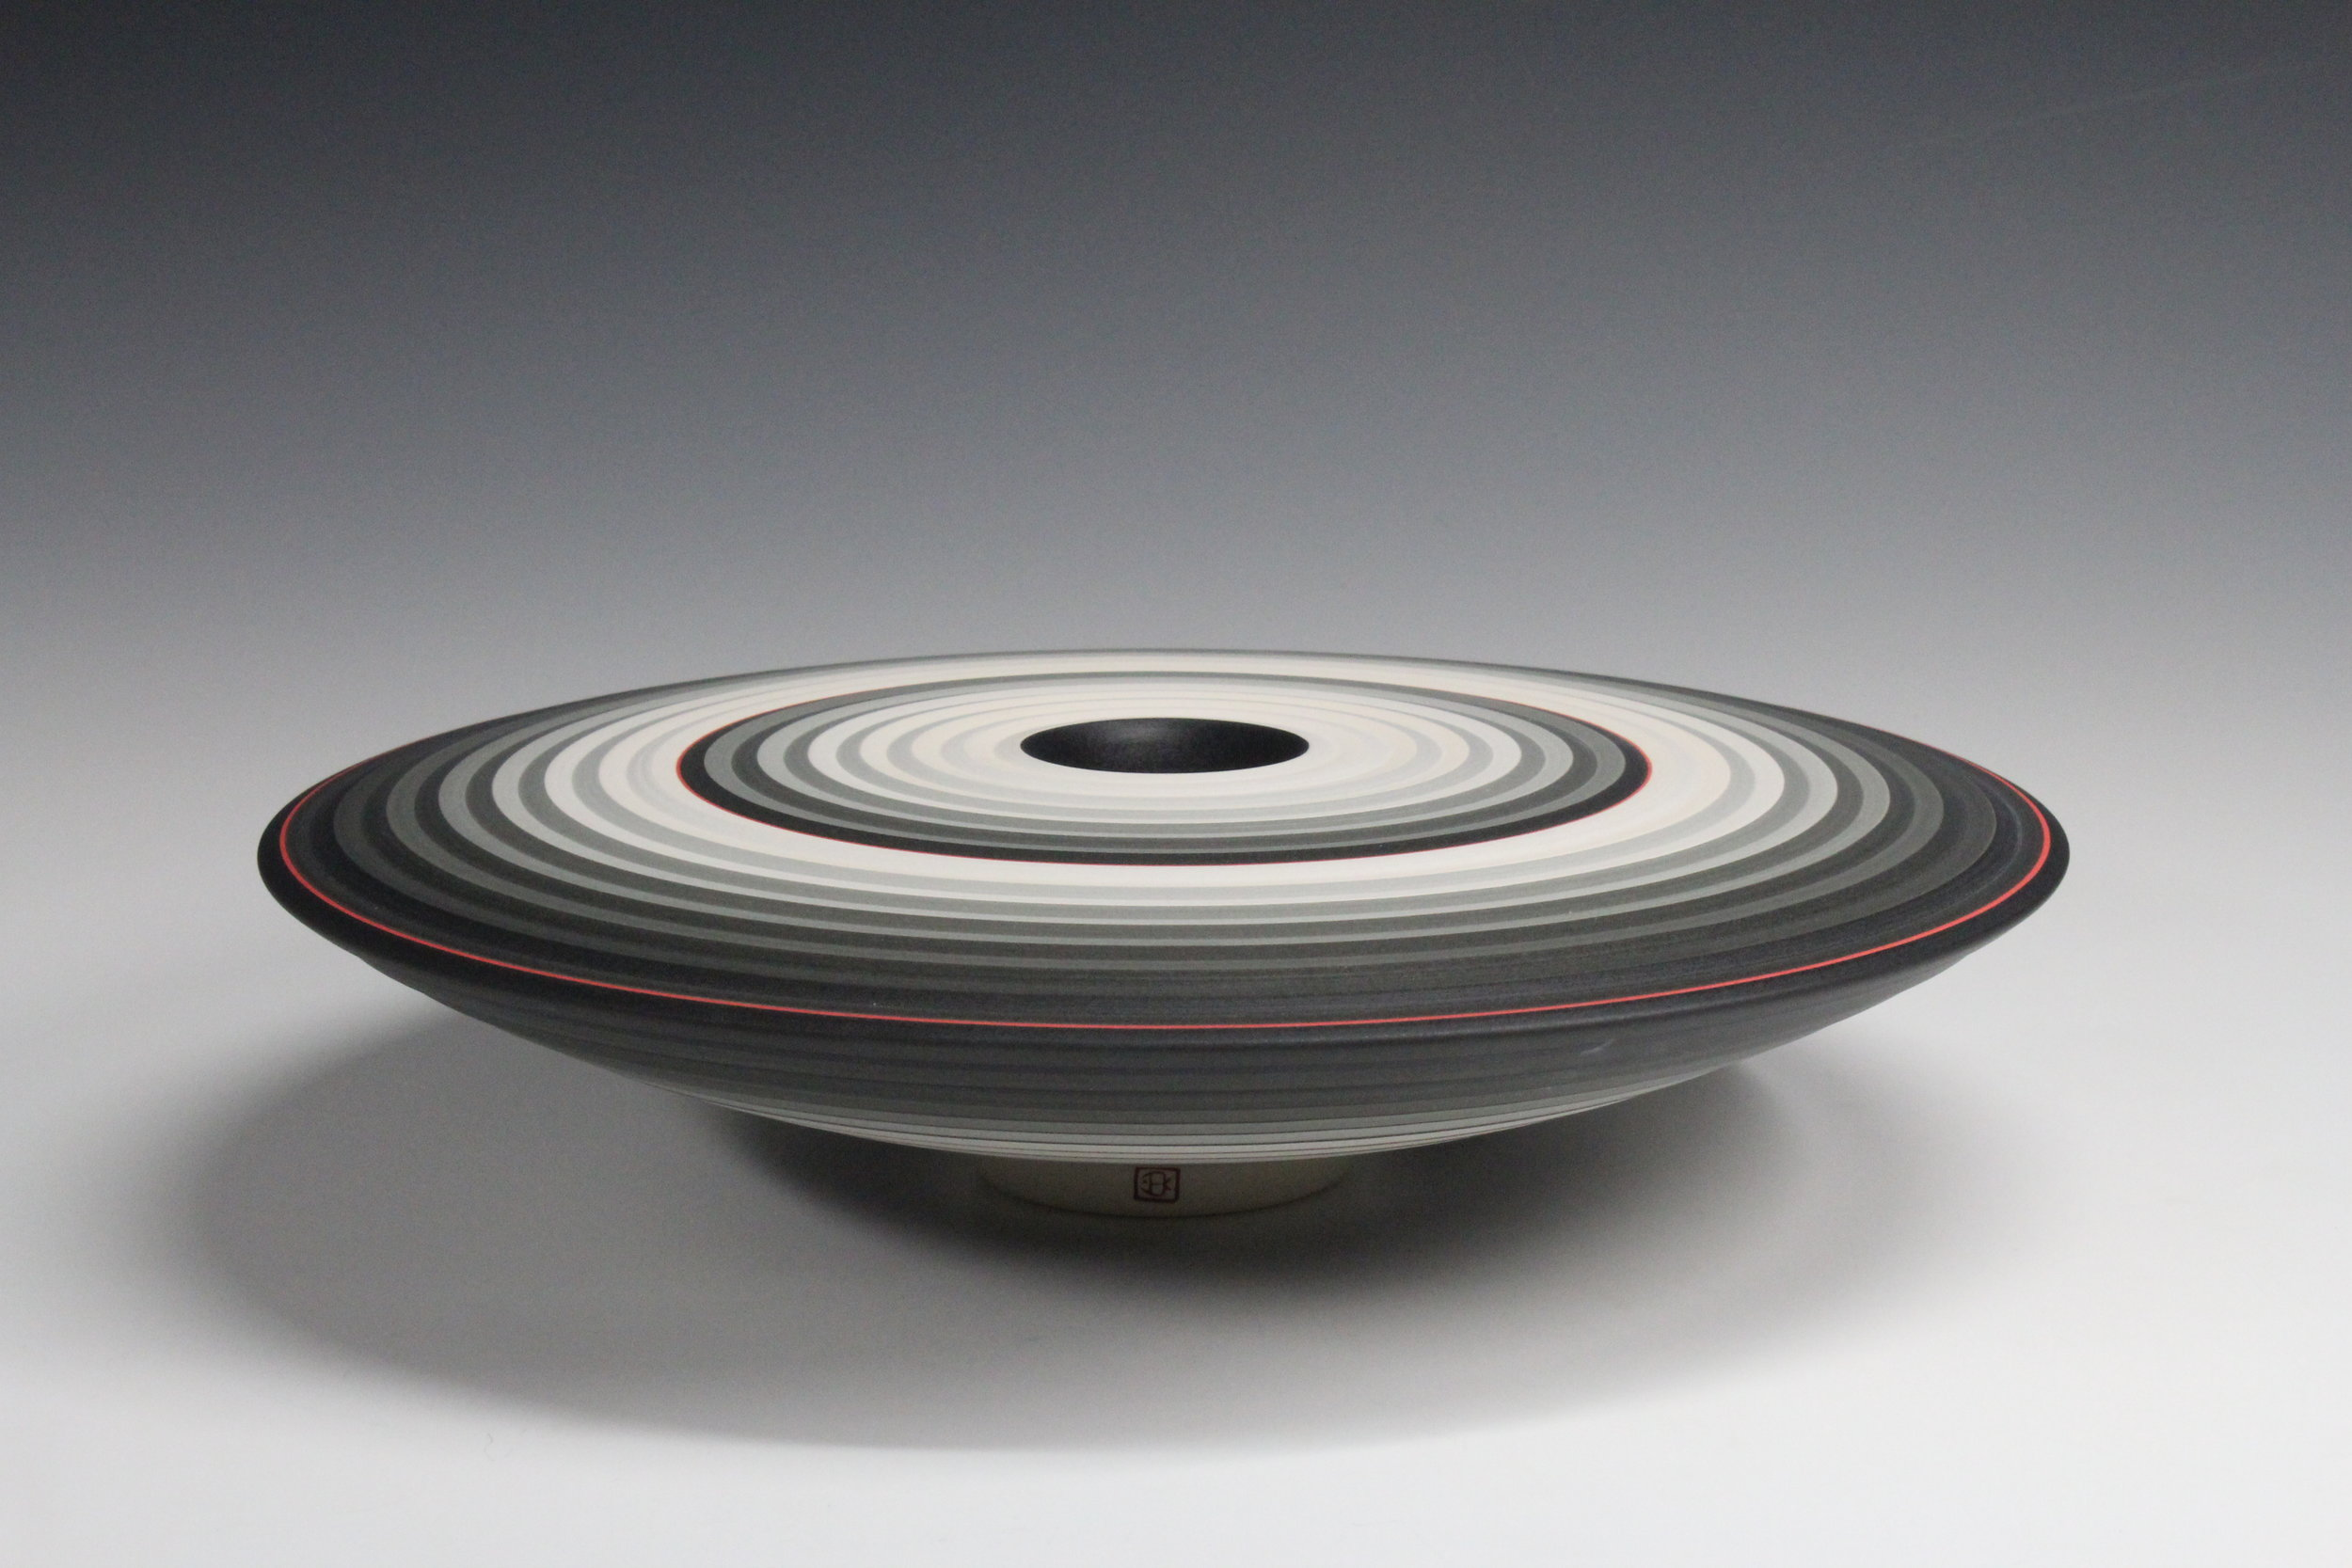 34.Object – Lower form